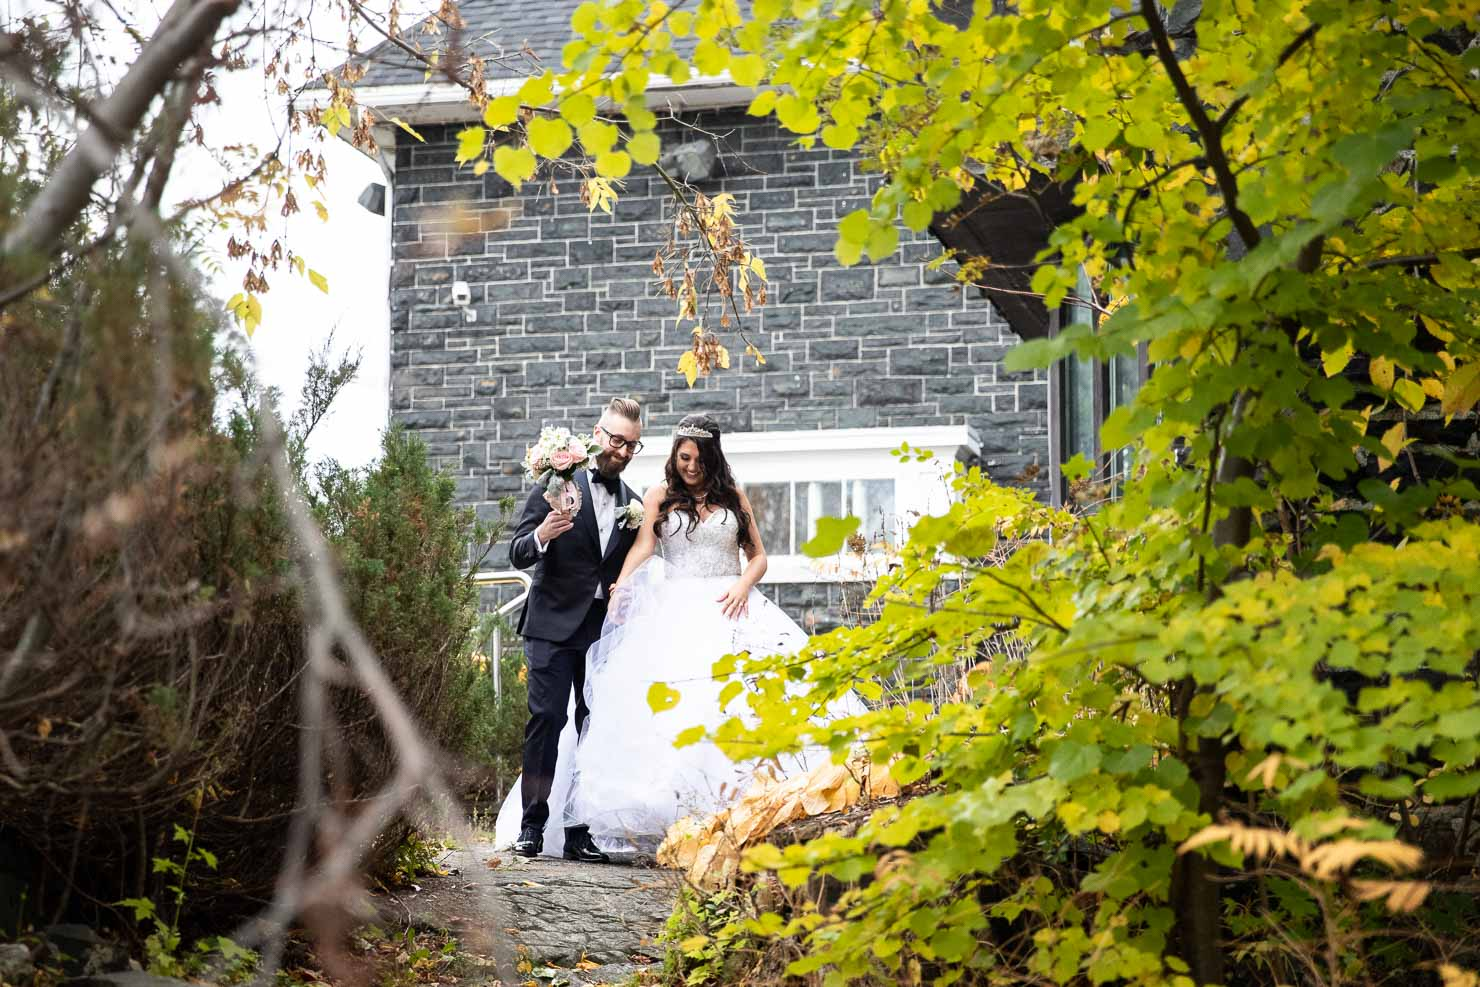 wedding, bride and groom, wedding, sudbury wedding, akaiserphoto, wedding photographer